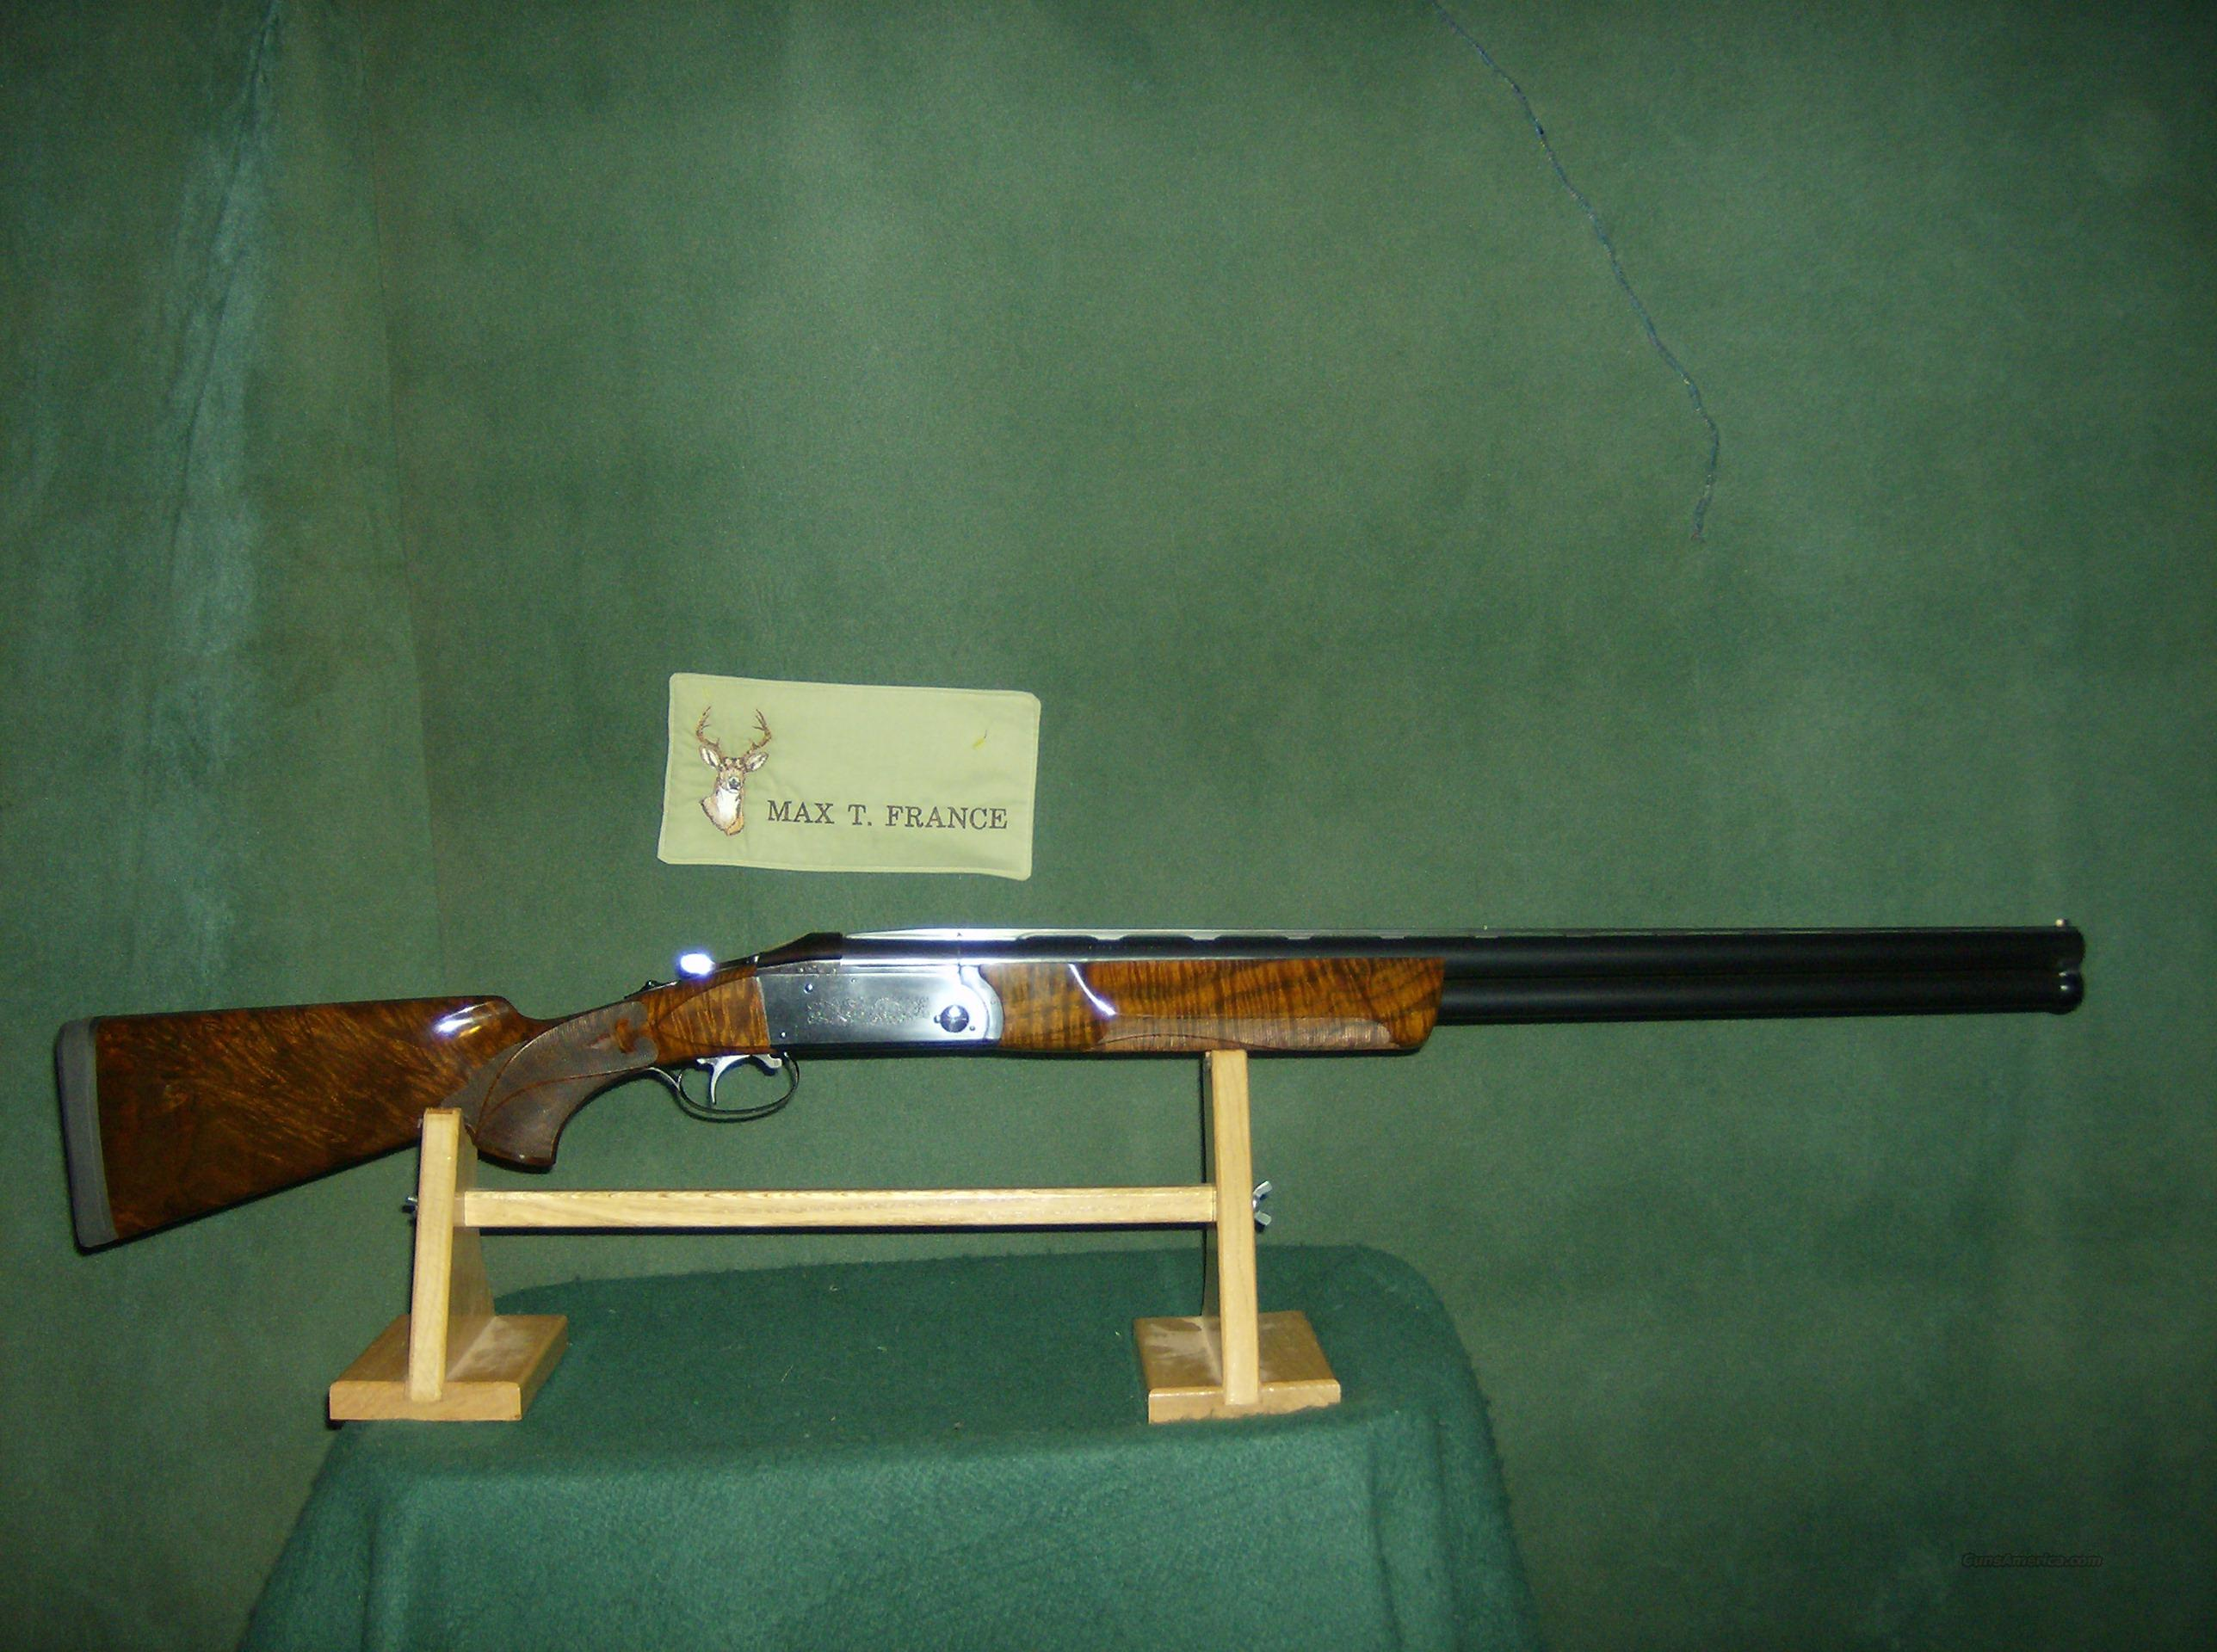 KRIEGOFF MODEL 32 SKEET 12GA  Guns > Shotguns > Krieghoff Shotguns